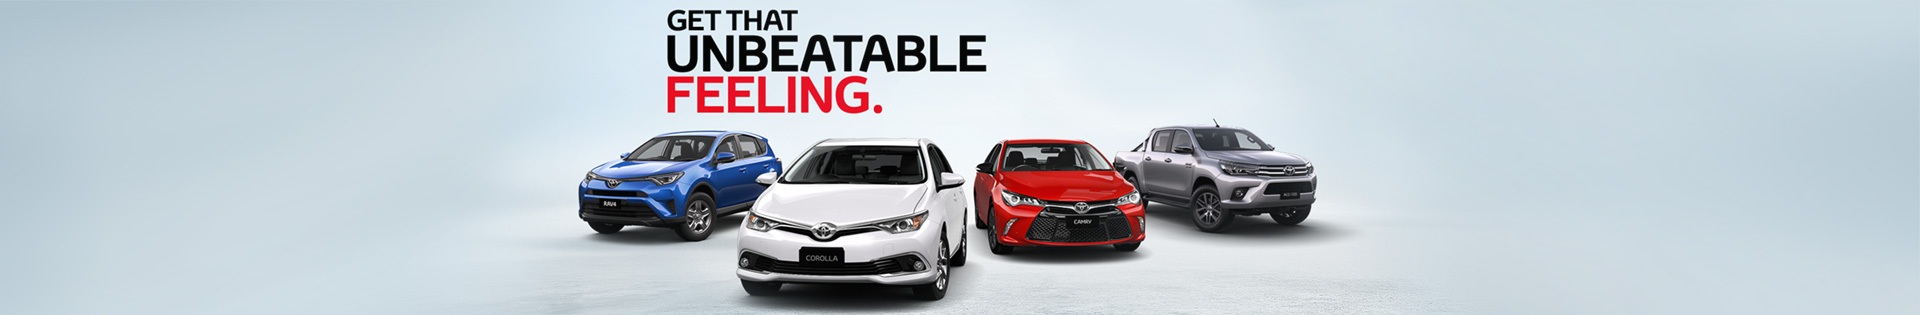 Toyota - National Offer - Get That Unbeatable Feeling - Toyota Value